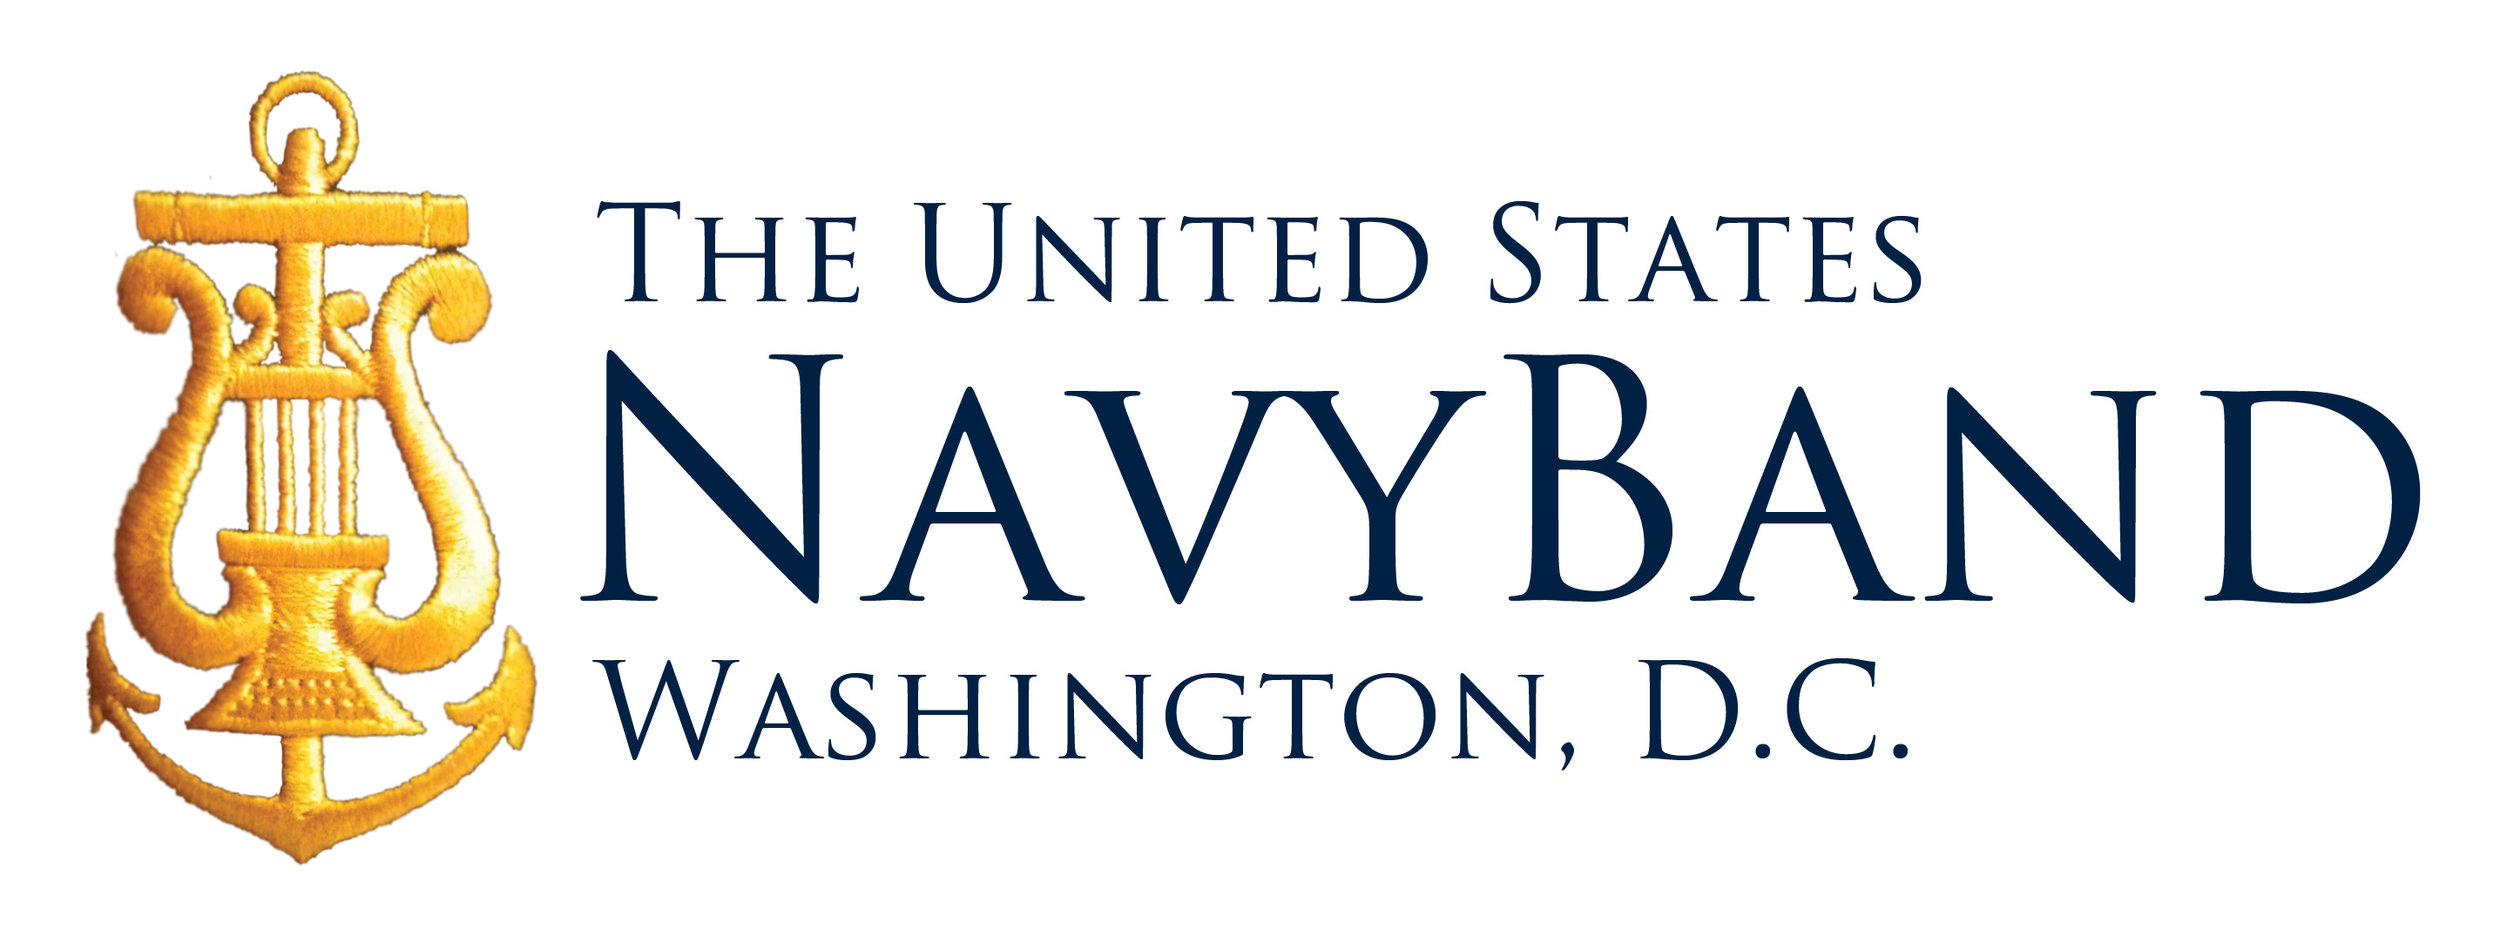 Photo Credit:   The United States Navy Band